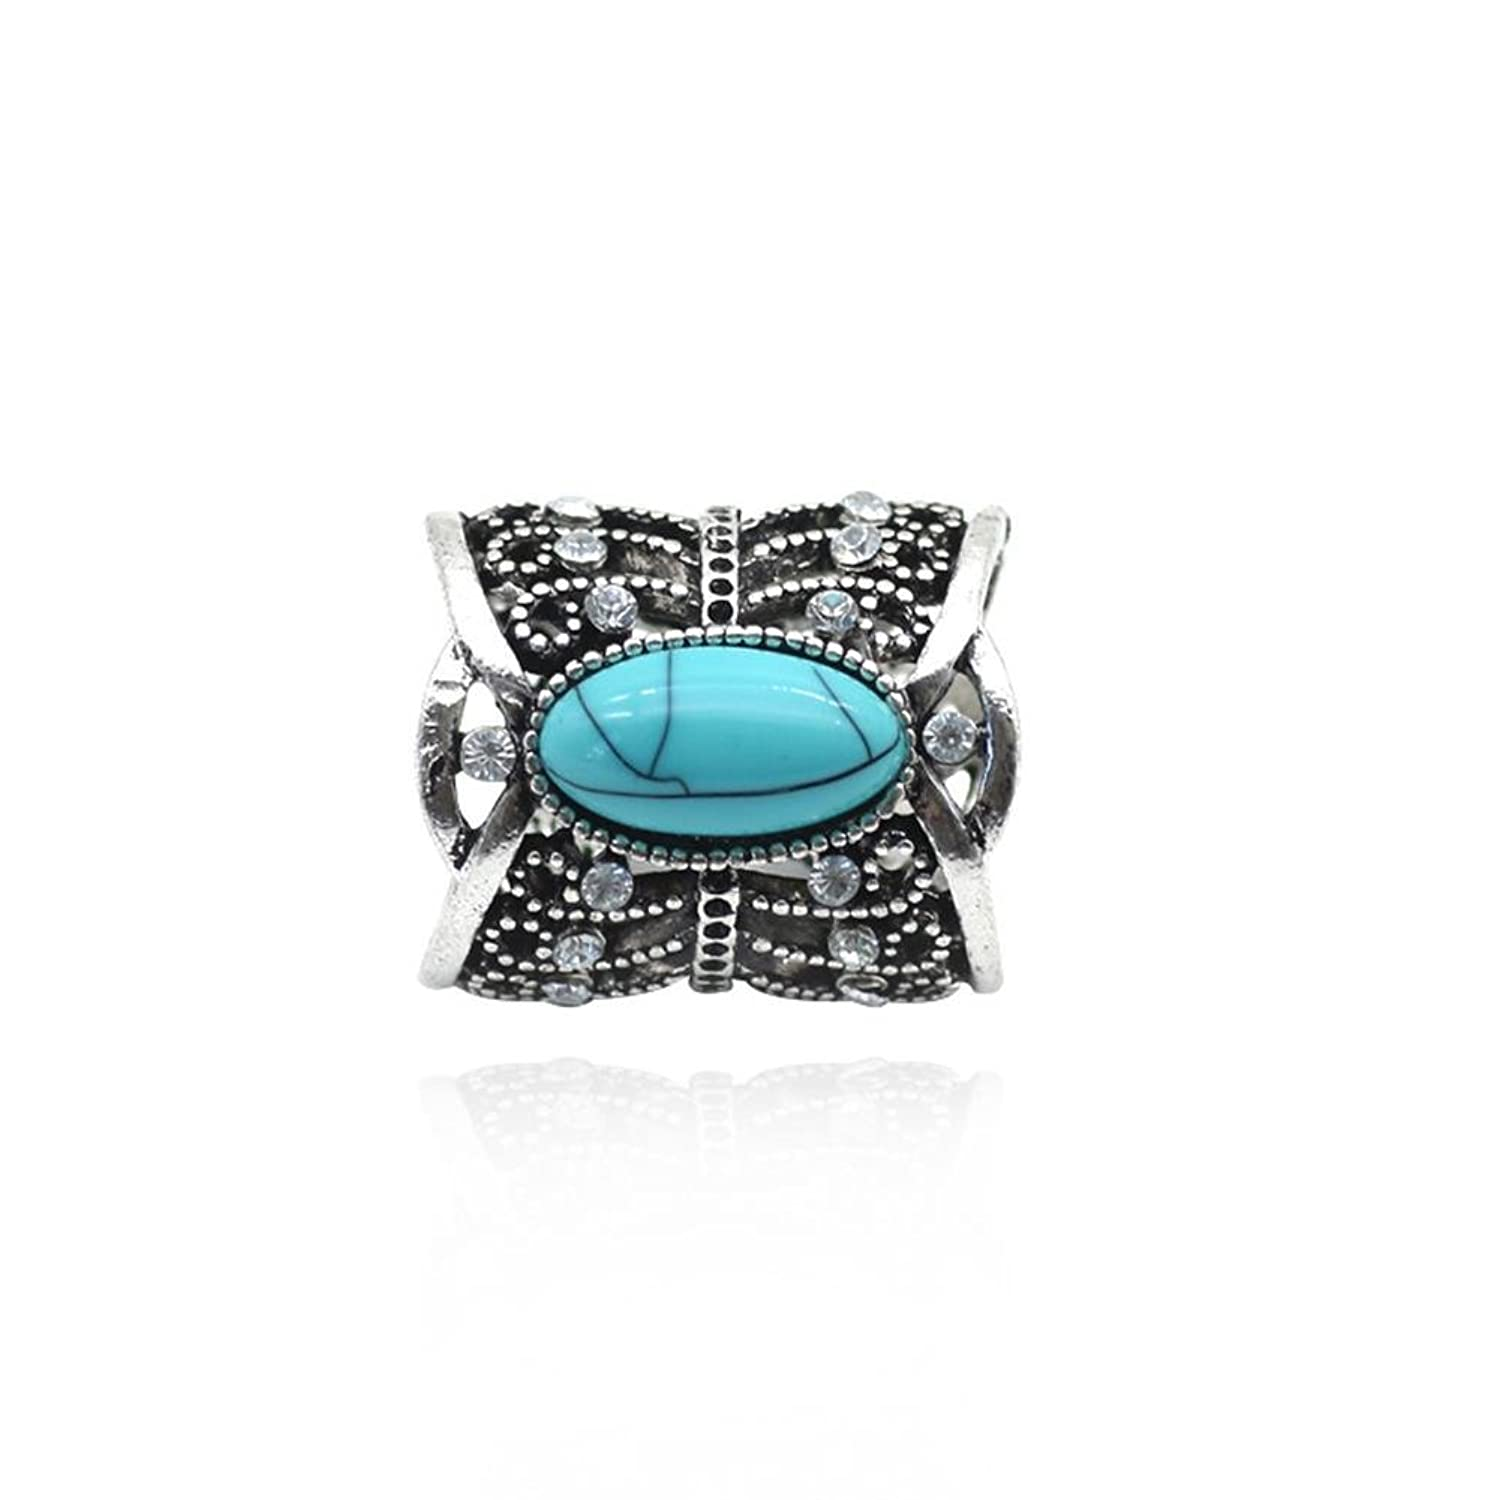 YinMai Vintage Turquoise Decorated Scarf Buckle Ring for Women